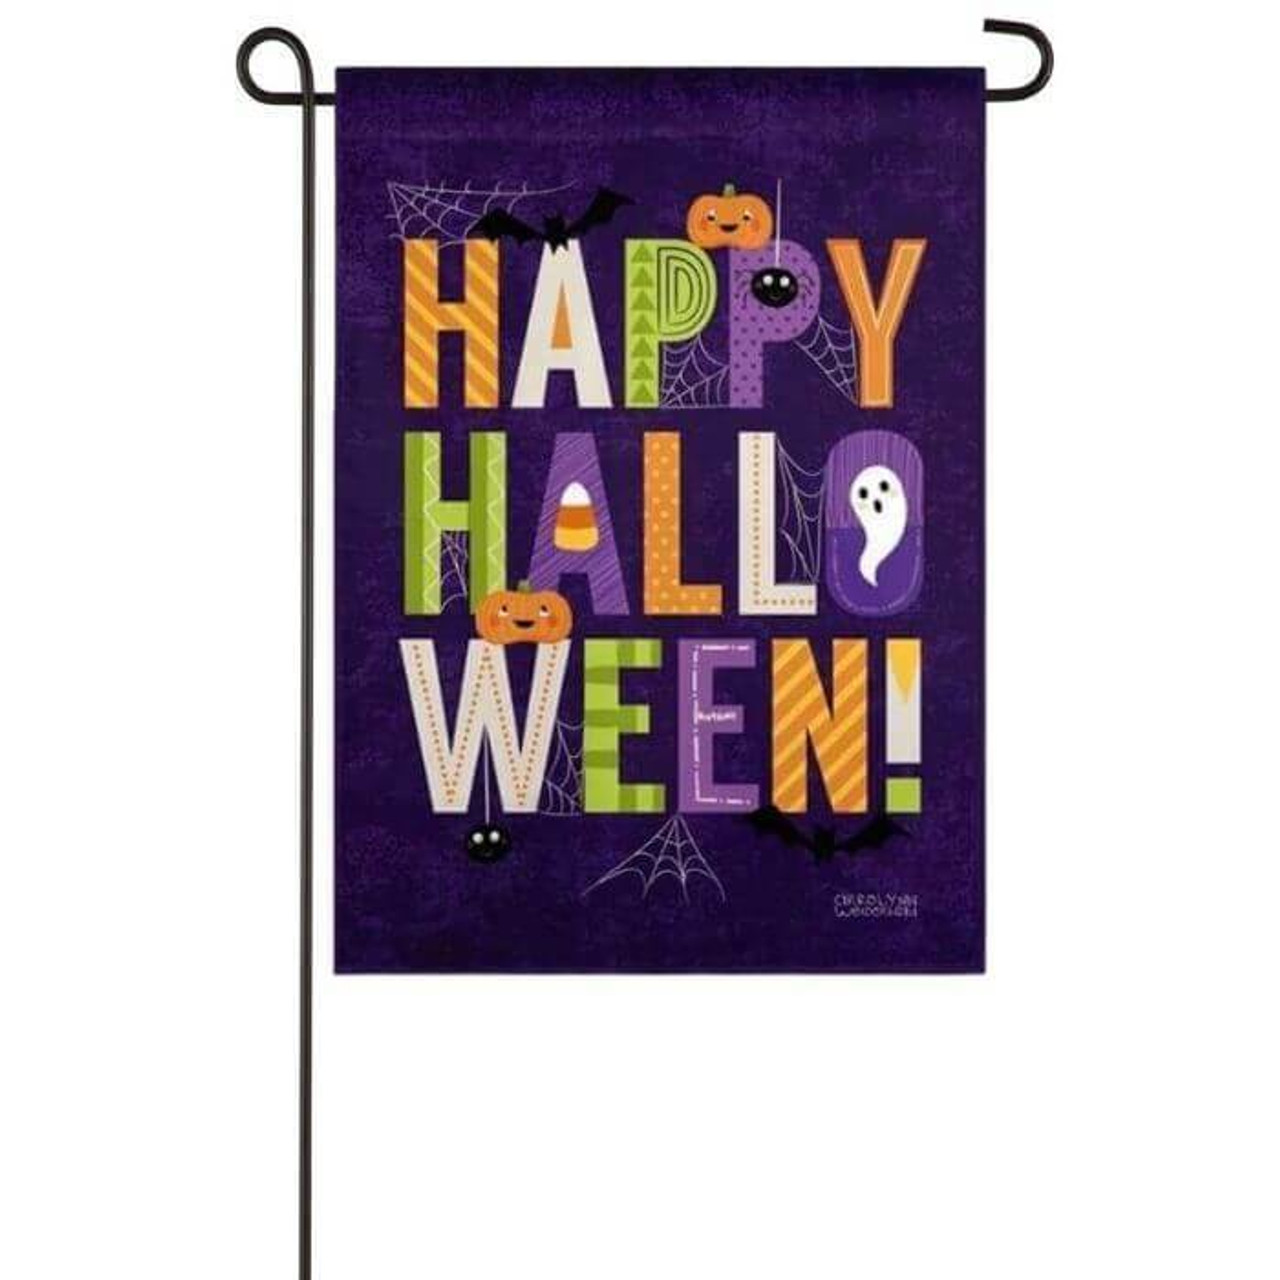 """Happy Halloween Garden Flag. This garden size suede flag features a purple distressed background, spiderwebs, pumpkin jack-o-lantern, ghosts, candy, and patterned colorful banner that reads: """"Happy Halloween"""". Words and artwork is readable from both sides of the flag."""